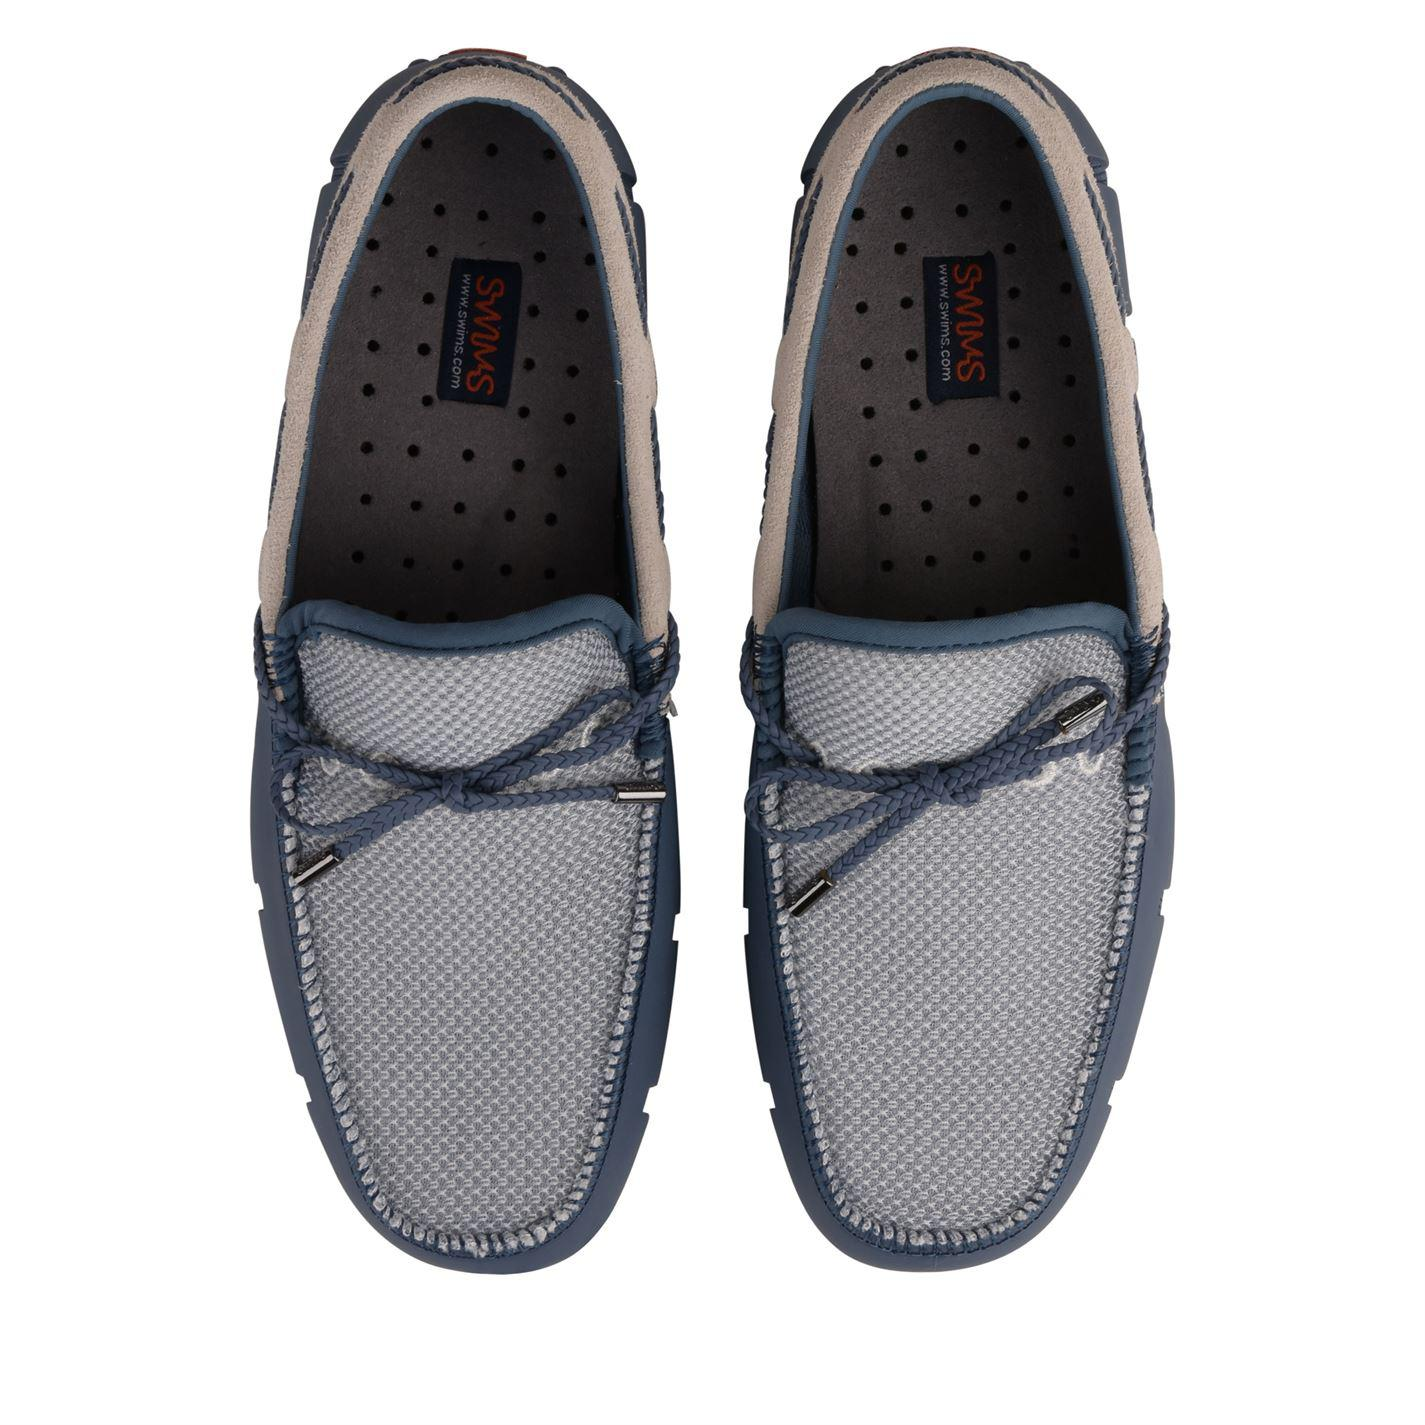 5563fe8a69ae4 Swims Braided Lux Loafers in Blue for Men - Lyst